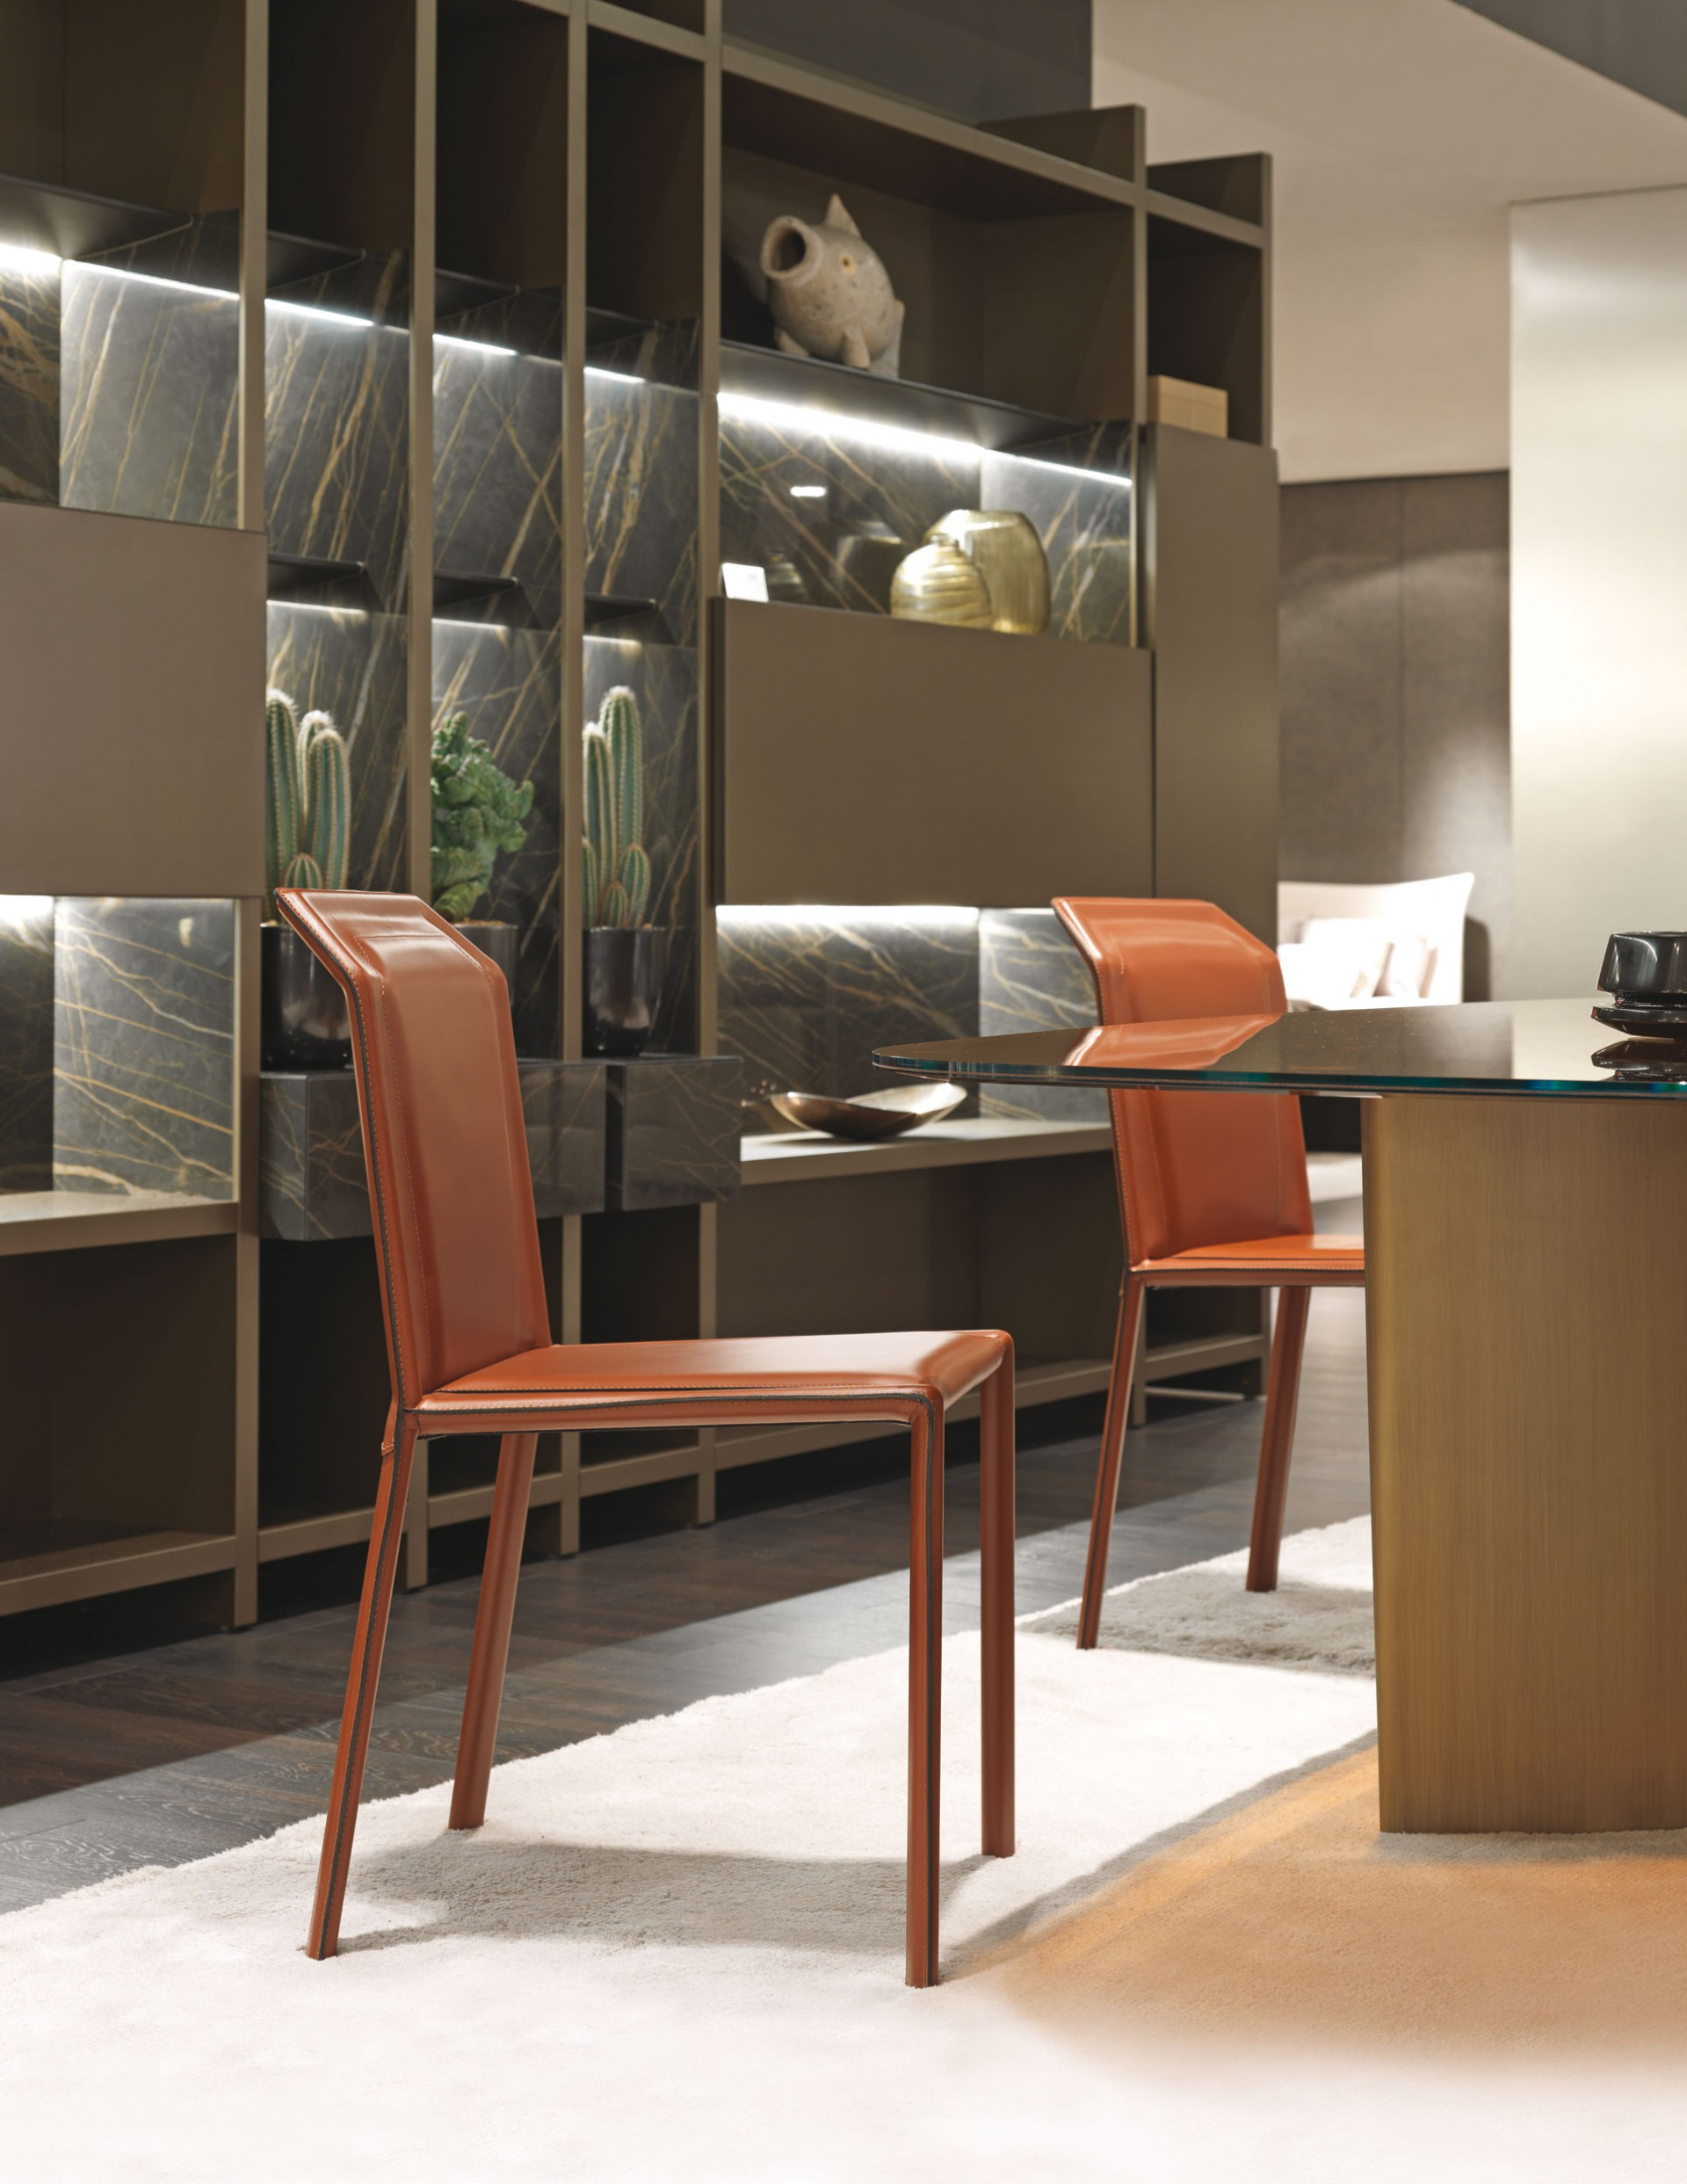 MisuraEmme Brera Chair Interior